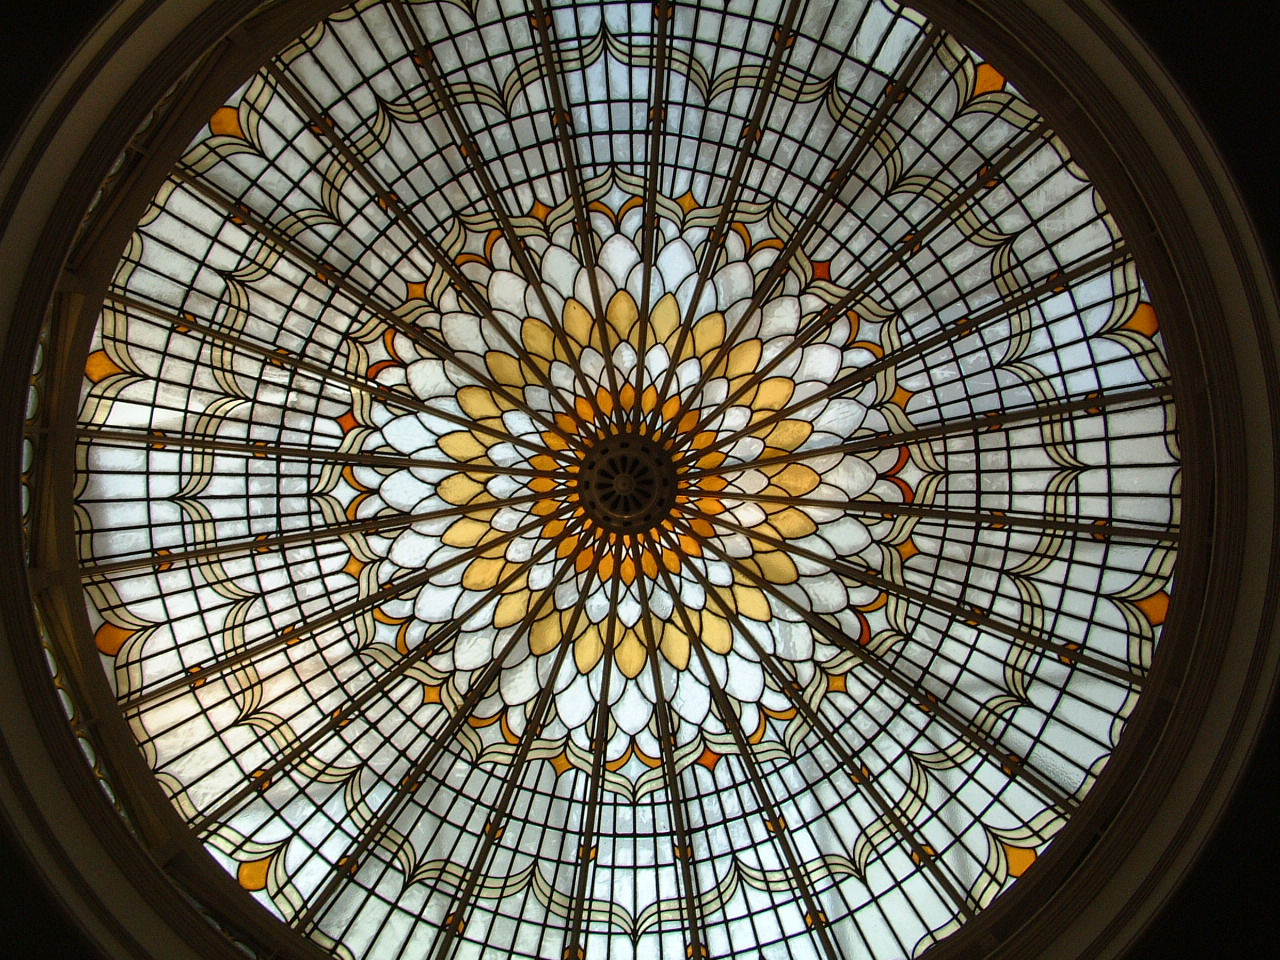 Bishopsgate Library's famous dome skylight, a distinctive feature of the main library reading room. Credit: Bishopsgate Institute.